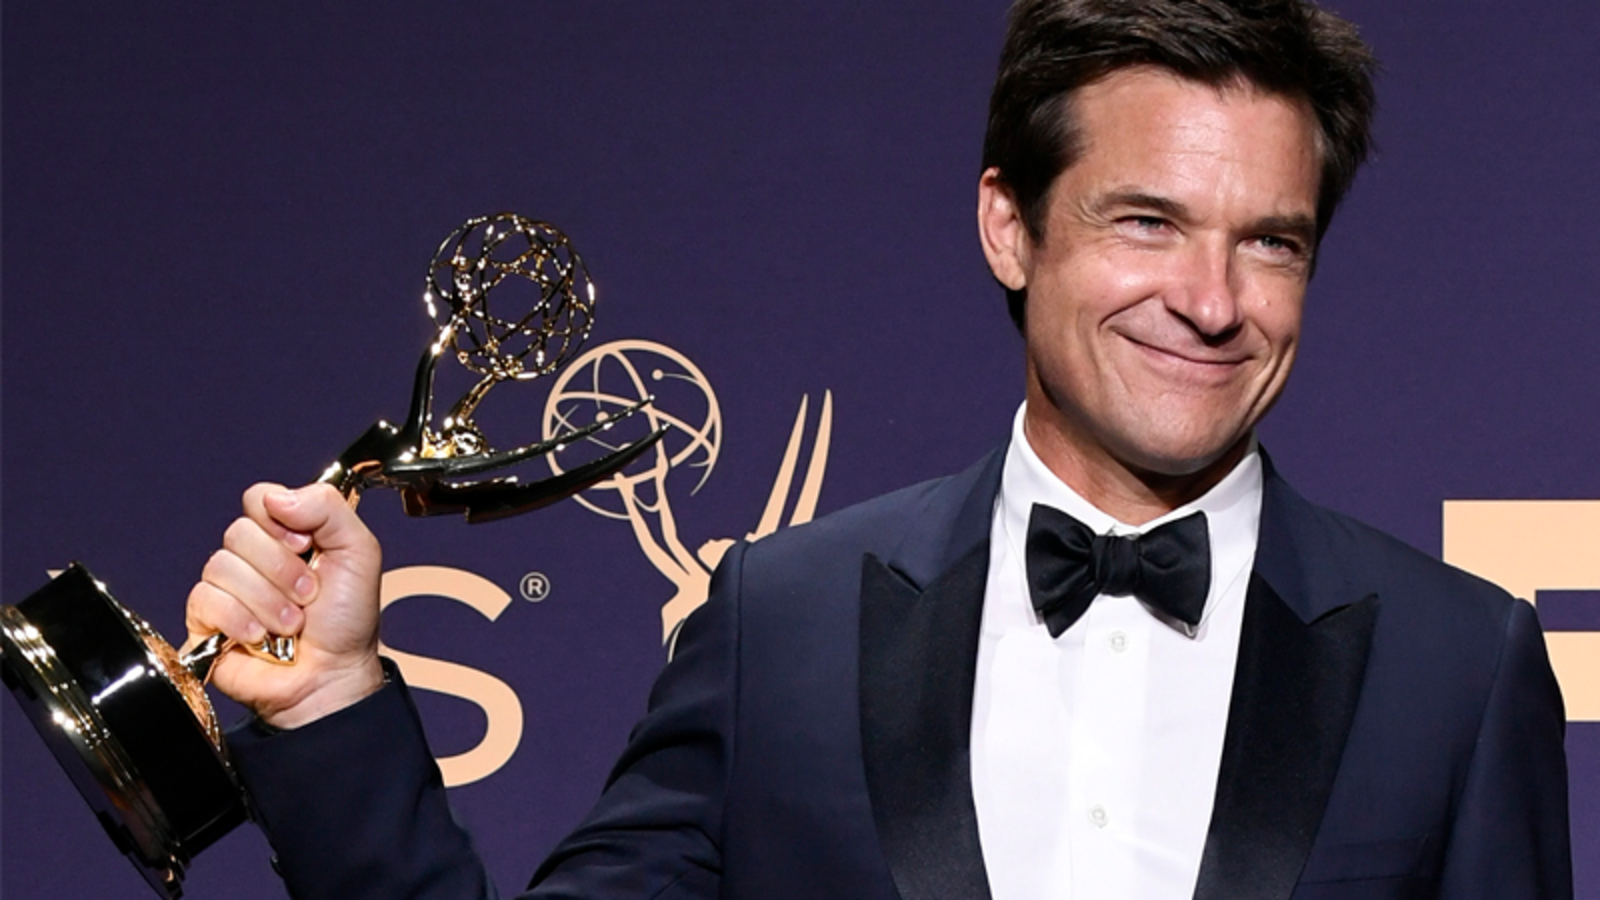 Jason Bateman dirigirá el thriller Shut In de New Line Cinema